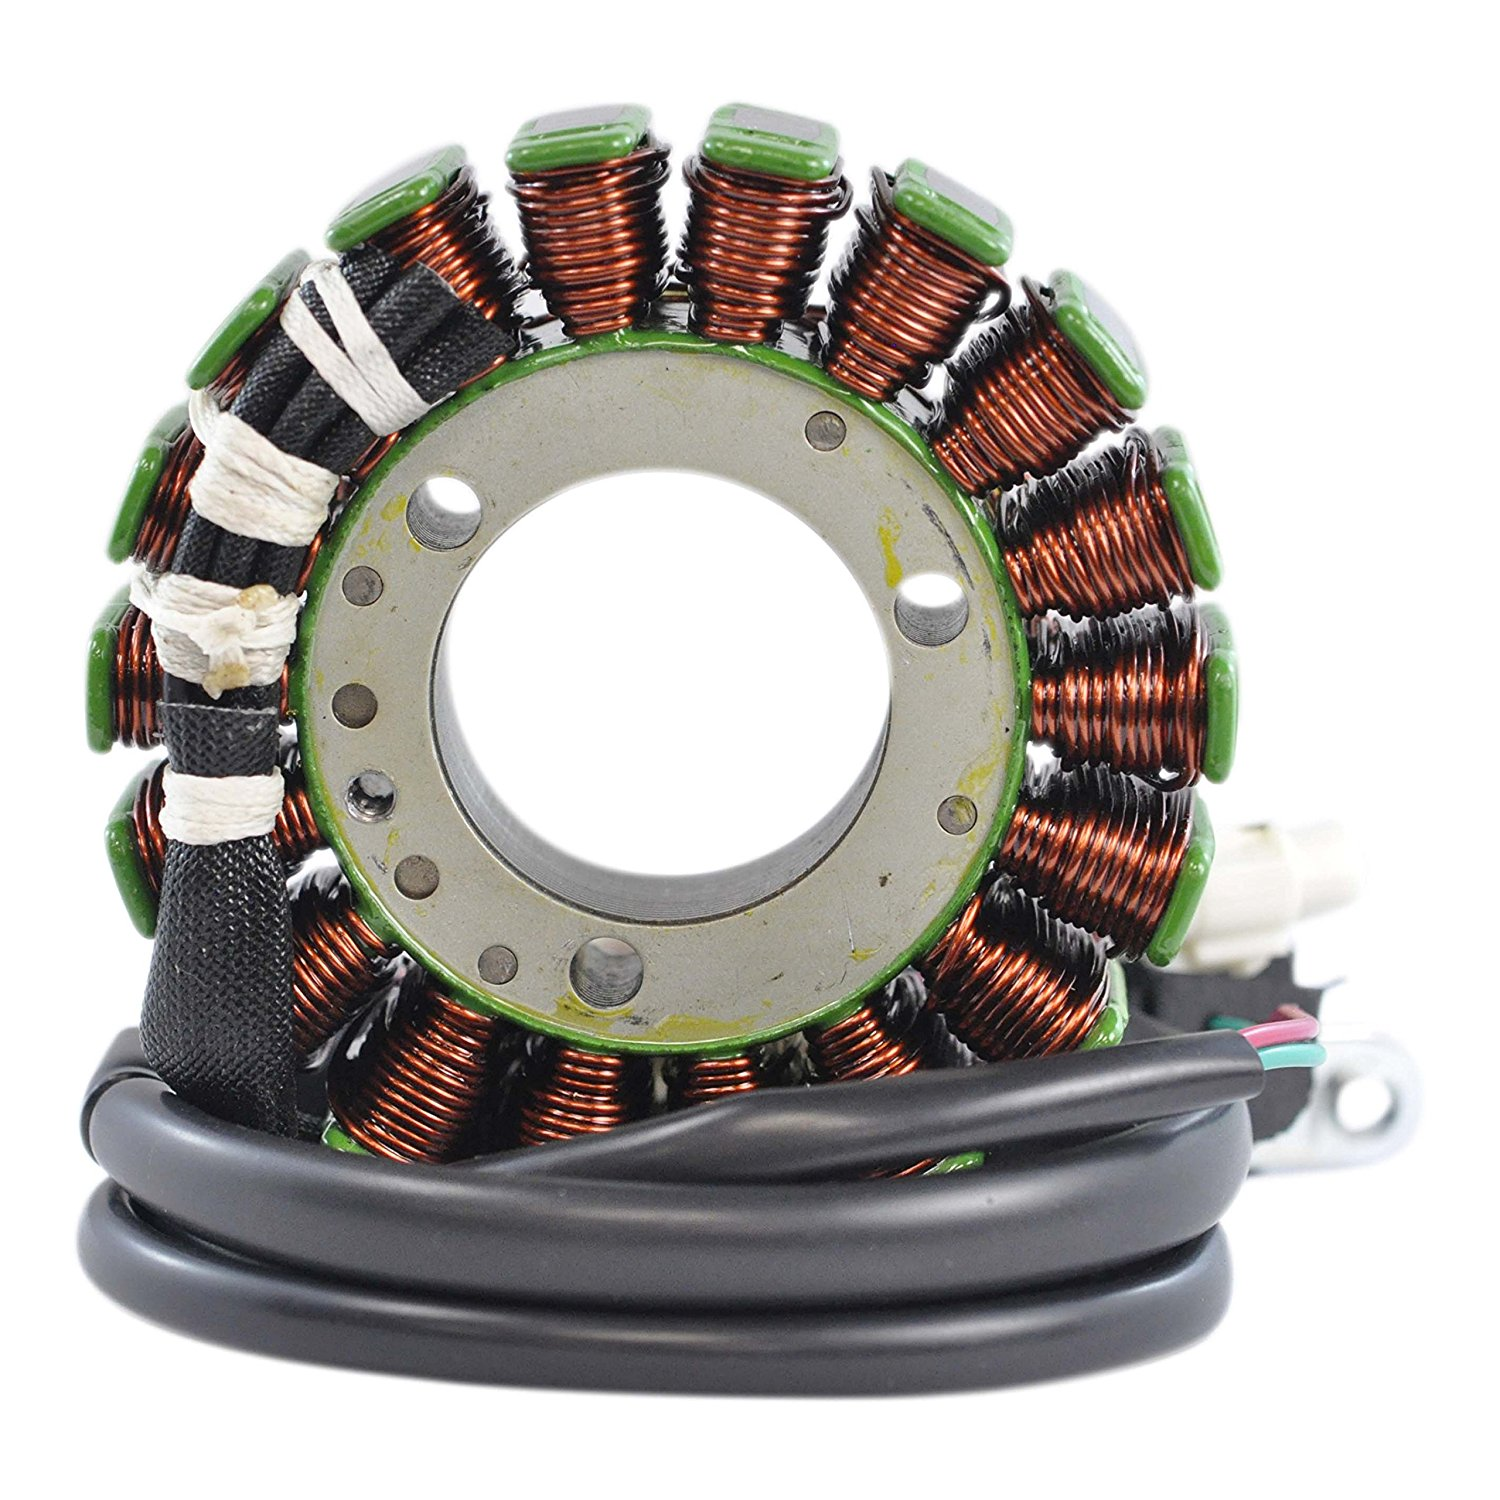 Stator for Polaris Outlaw 450 S Outlaw 525 Outlaw 525 IRS Outlaw 525 S 2007-2011